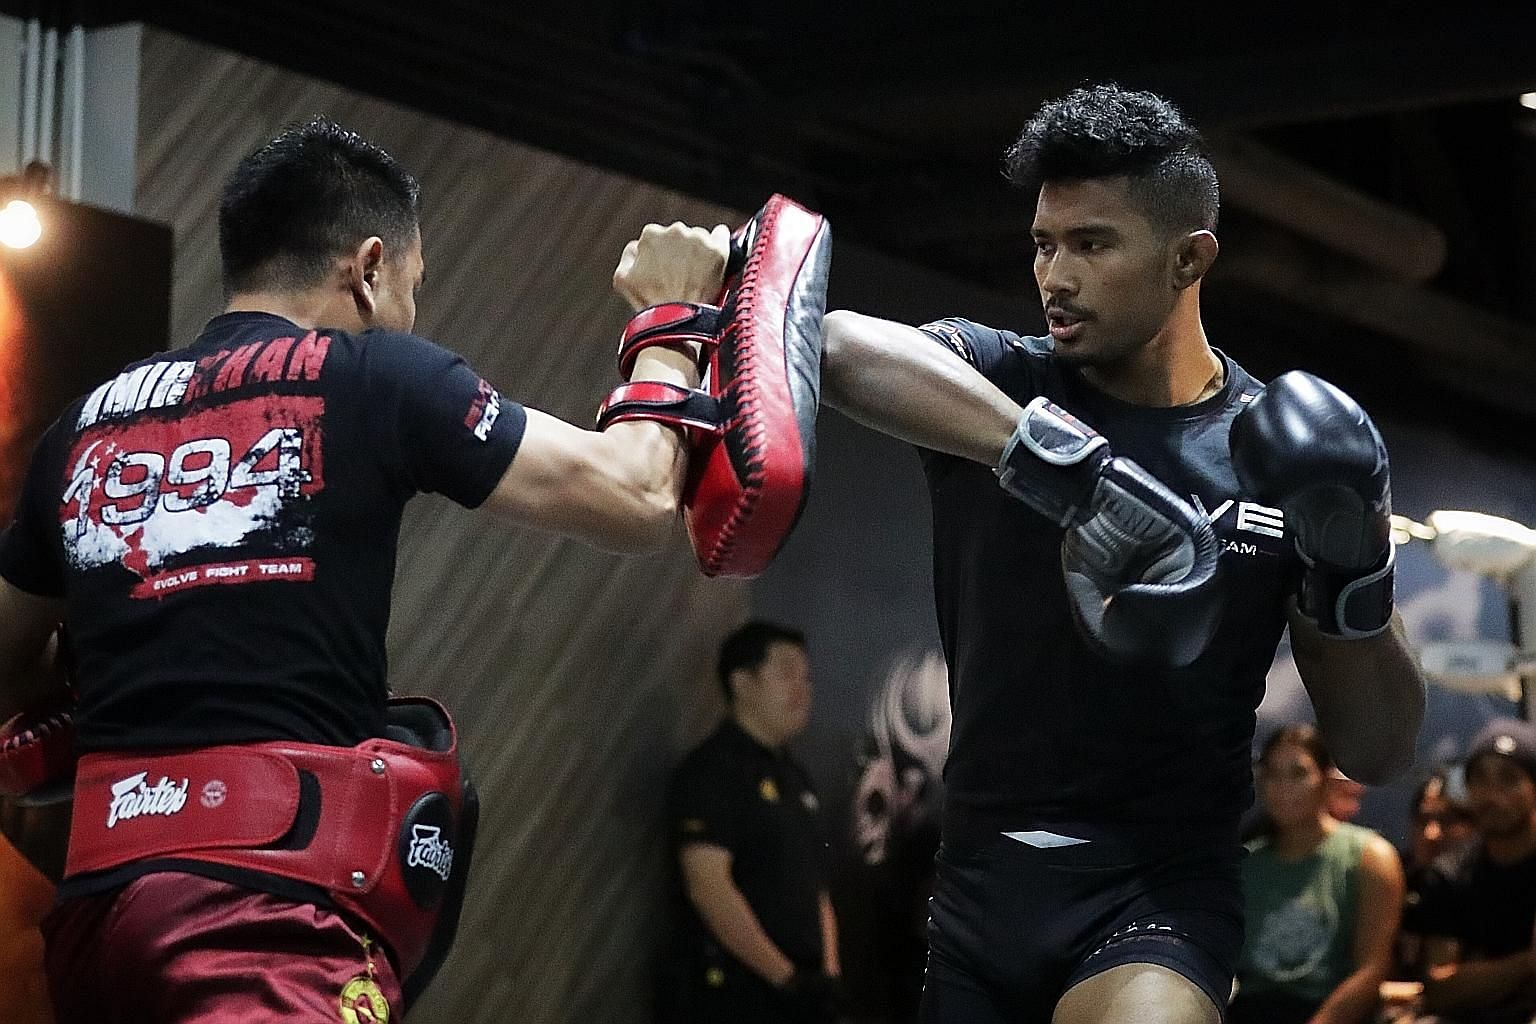 Singapore MMA fighter Amir Khan during the open workouts on Tuesday. He will fight Malaysia's Ev Ting in a lightweight bout, a co-main event at One Championship's Edge of Greatness event today. ST PHOTO: GIN TAY